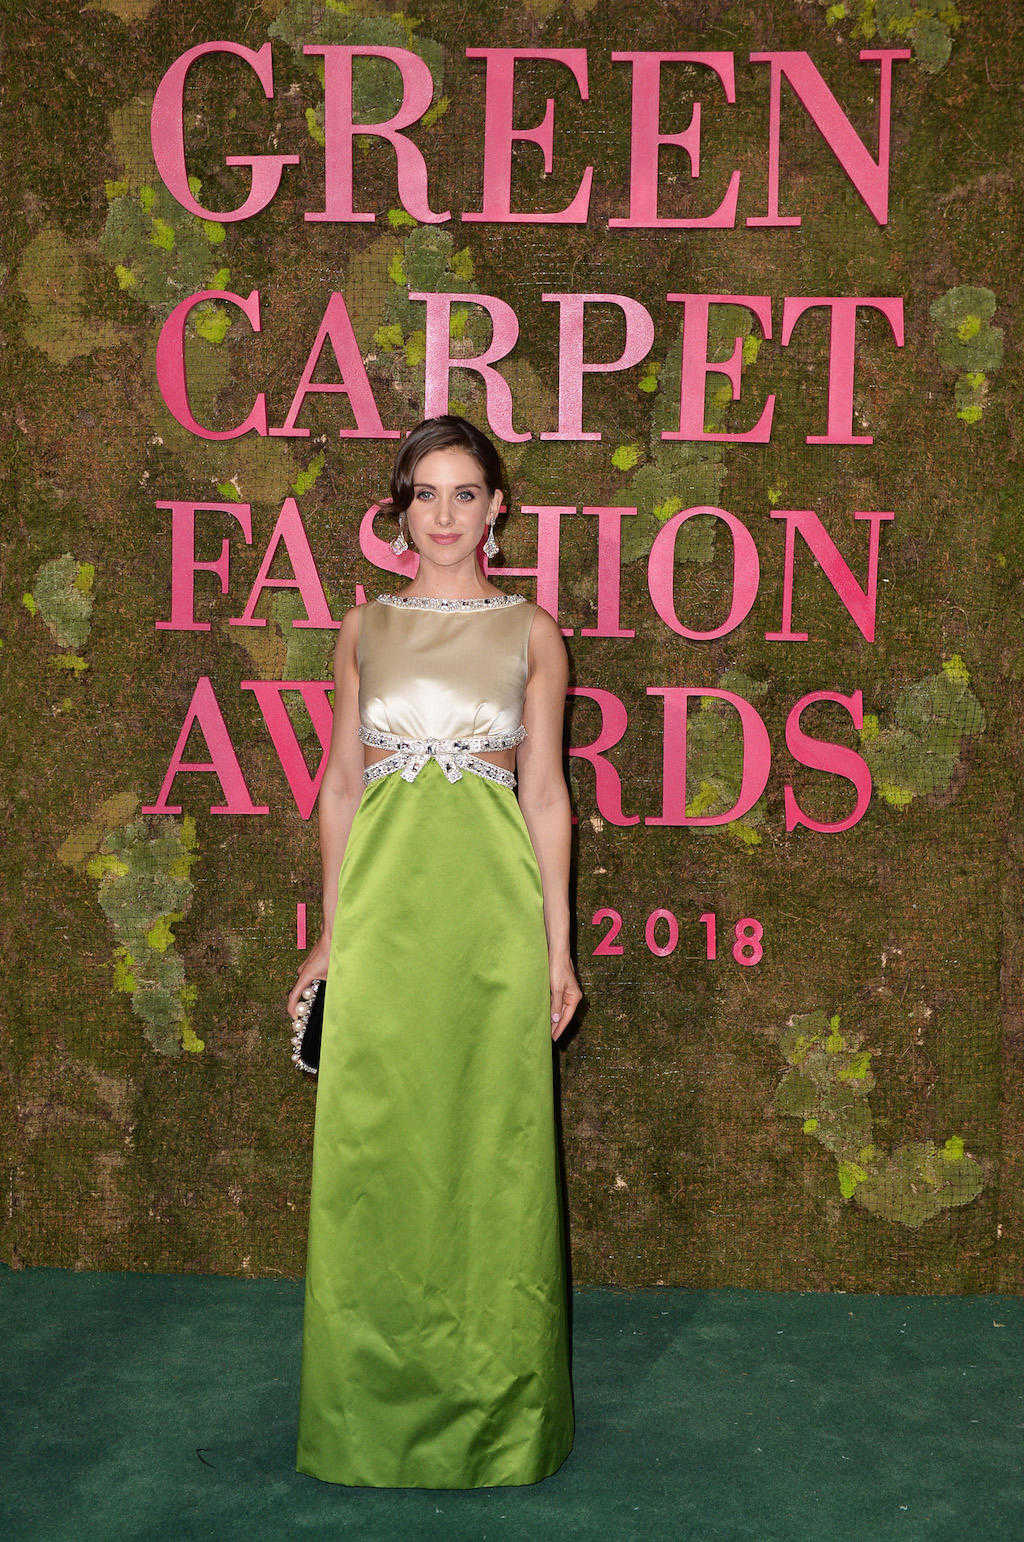 Green Carpet Awards 2018 - Alison Brie - Hair and Make Up by Massimo Serini